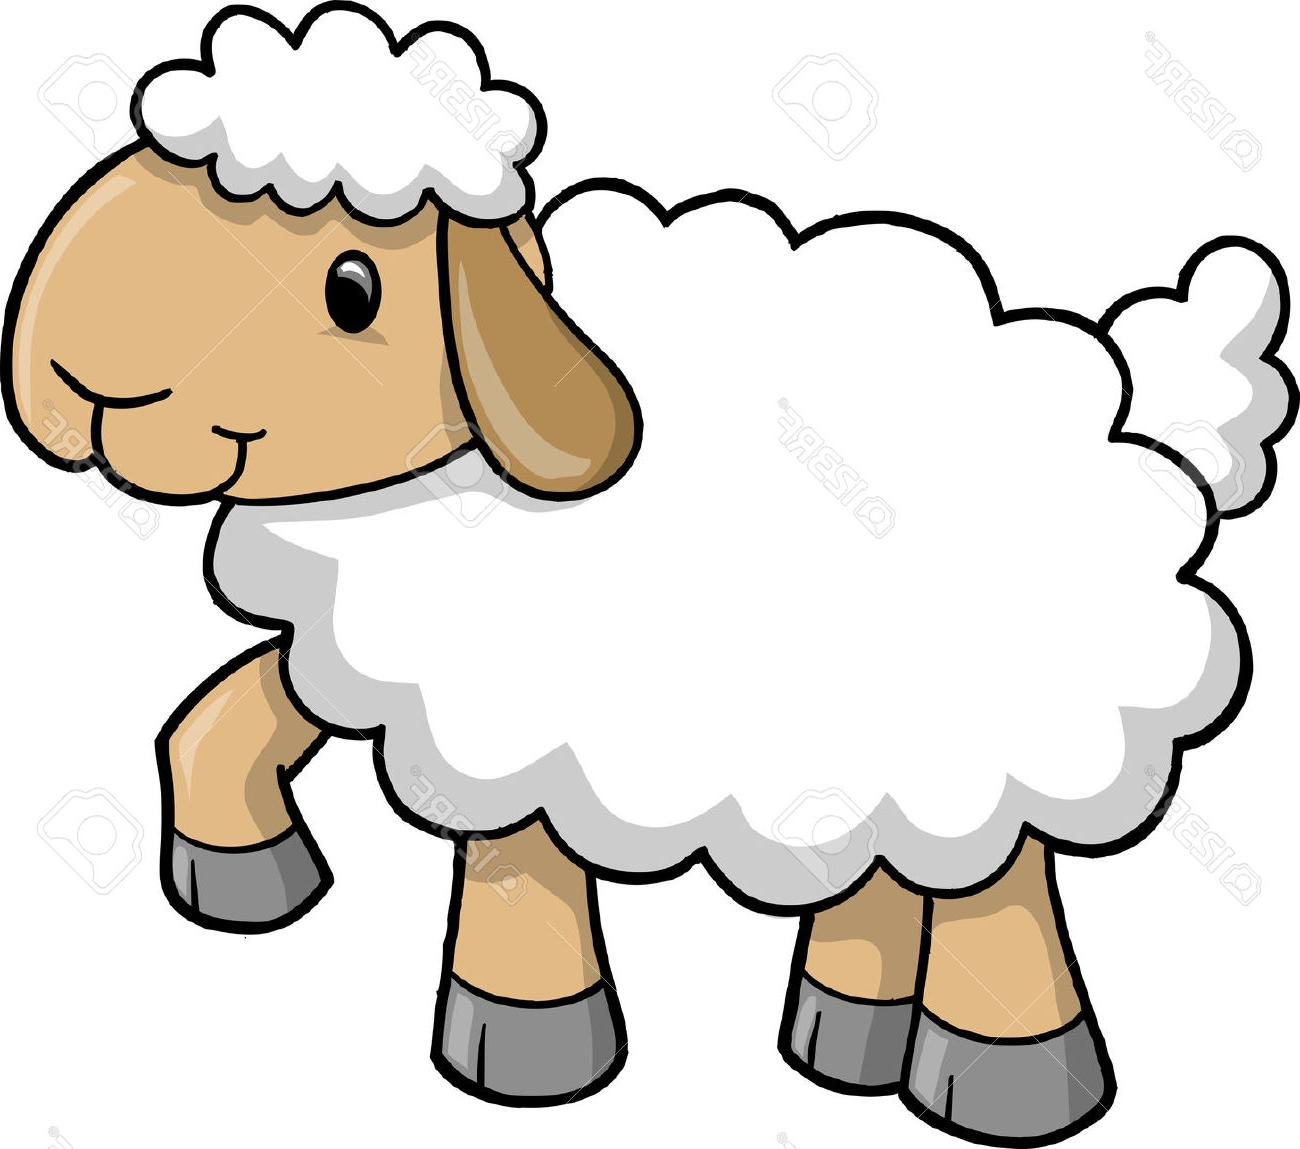 Sheep clipart 10 » Clipart Station.